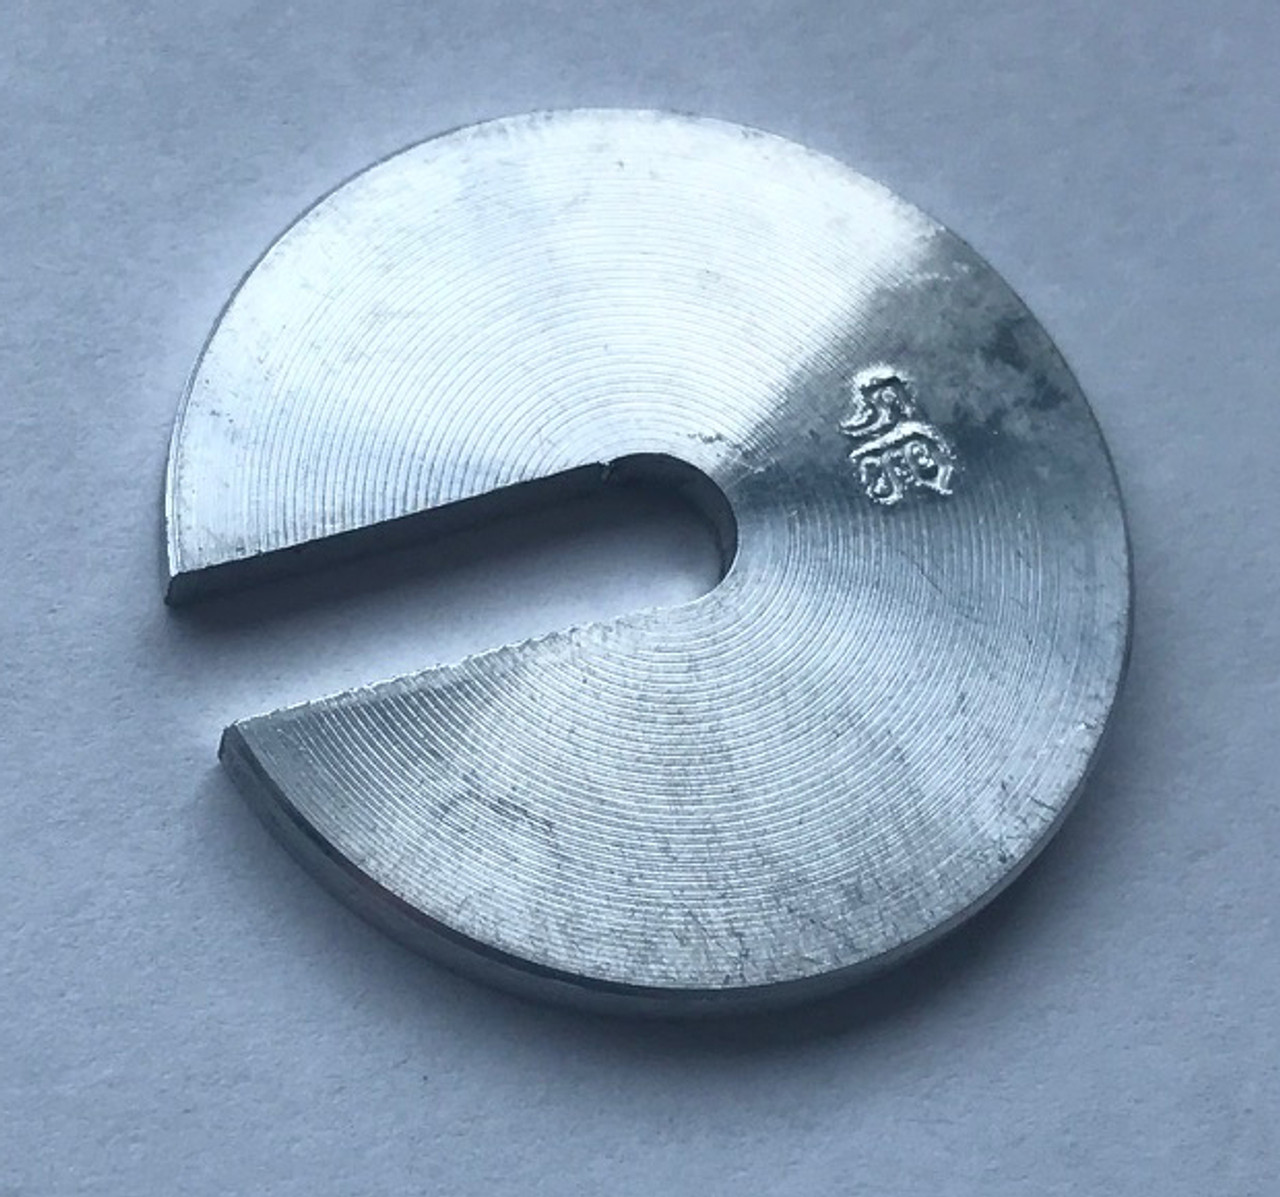 Slotted mass, Slotted Weight, 5 grams, for Aluminum hangers